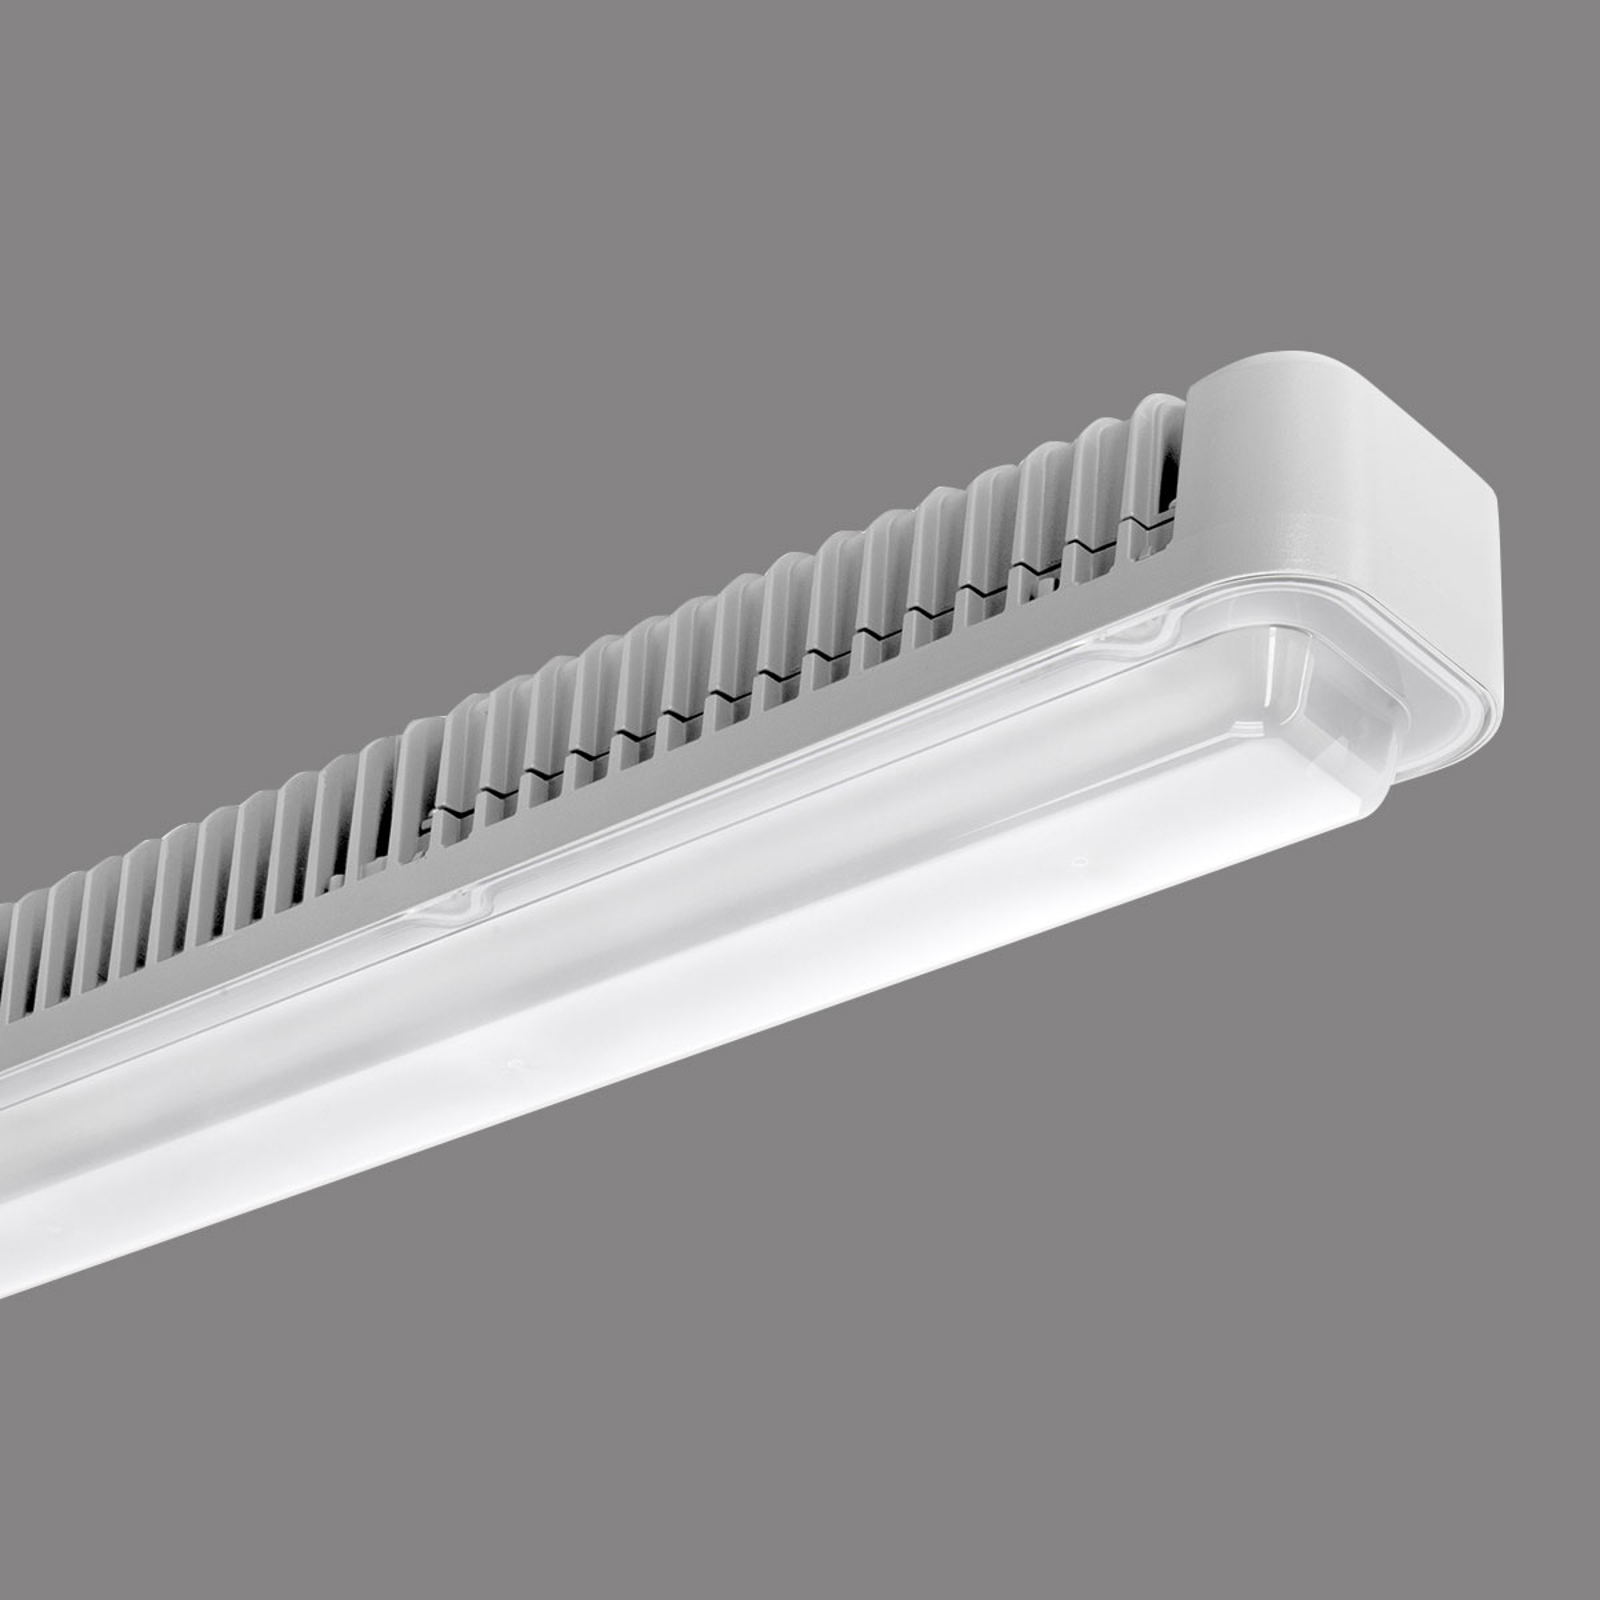 Lampa sufitowa LED Koa Line STR/PC S/EW LED 56 W